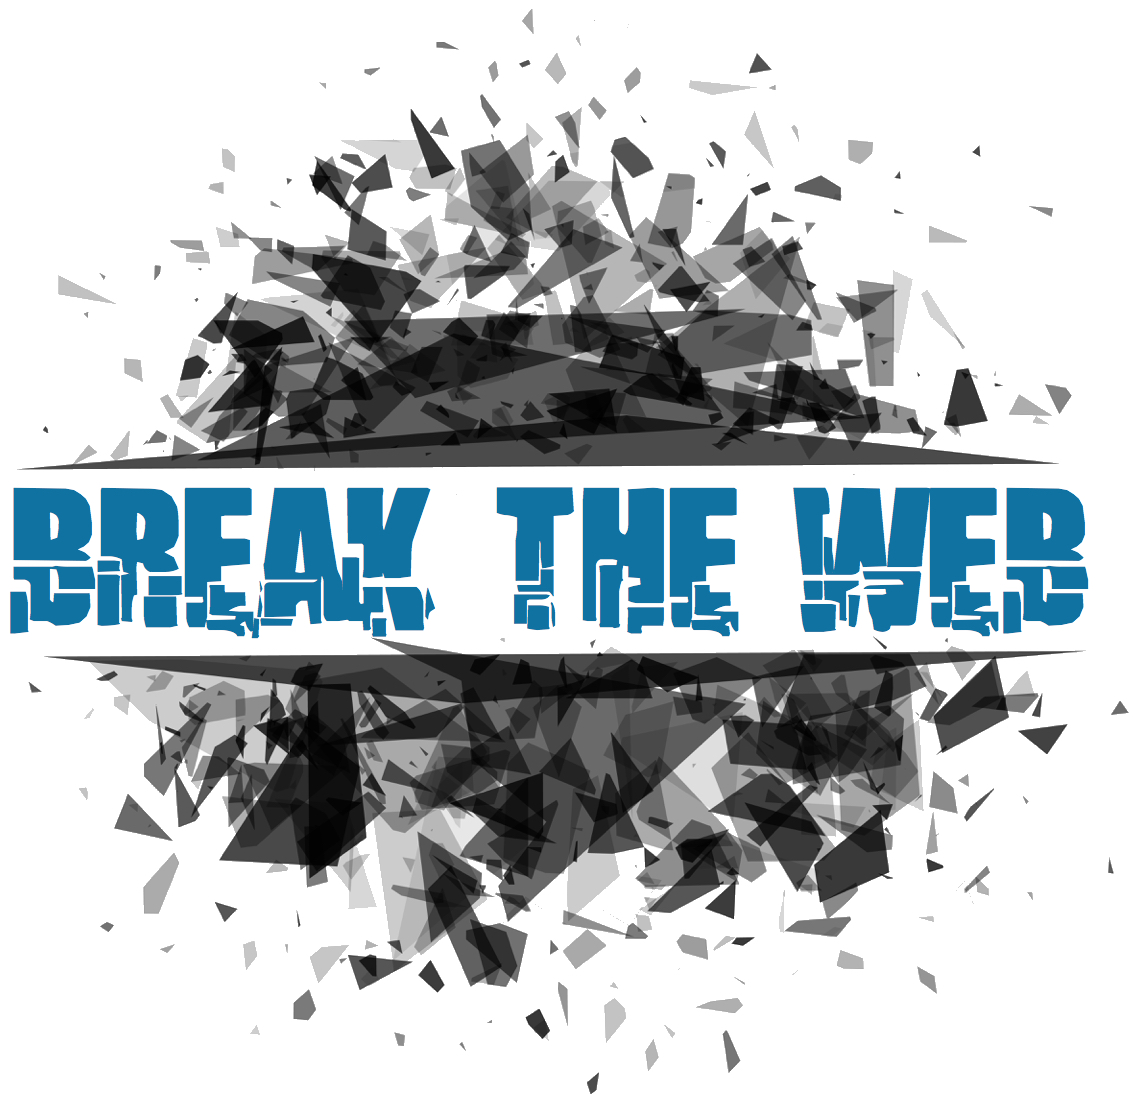 Break The Web